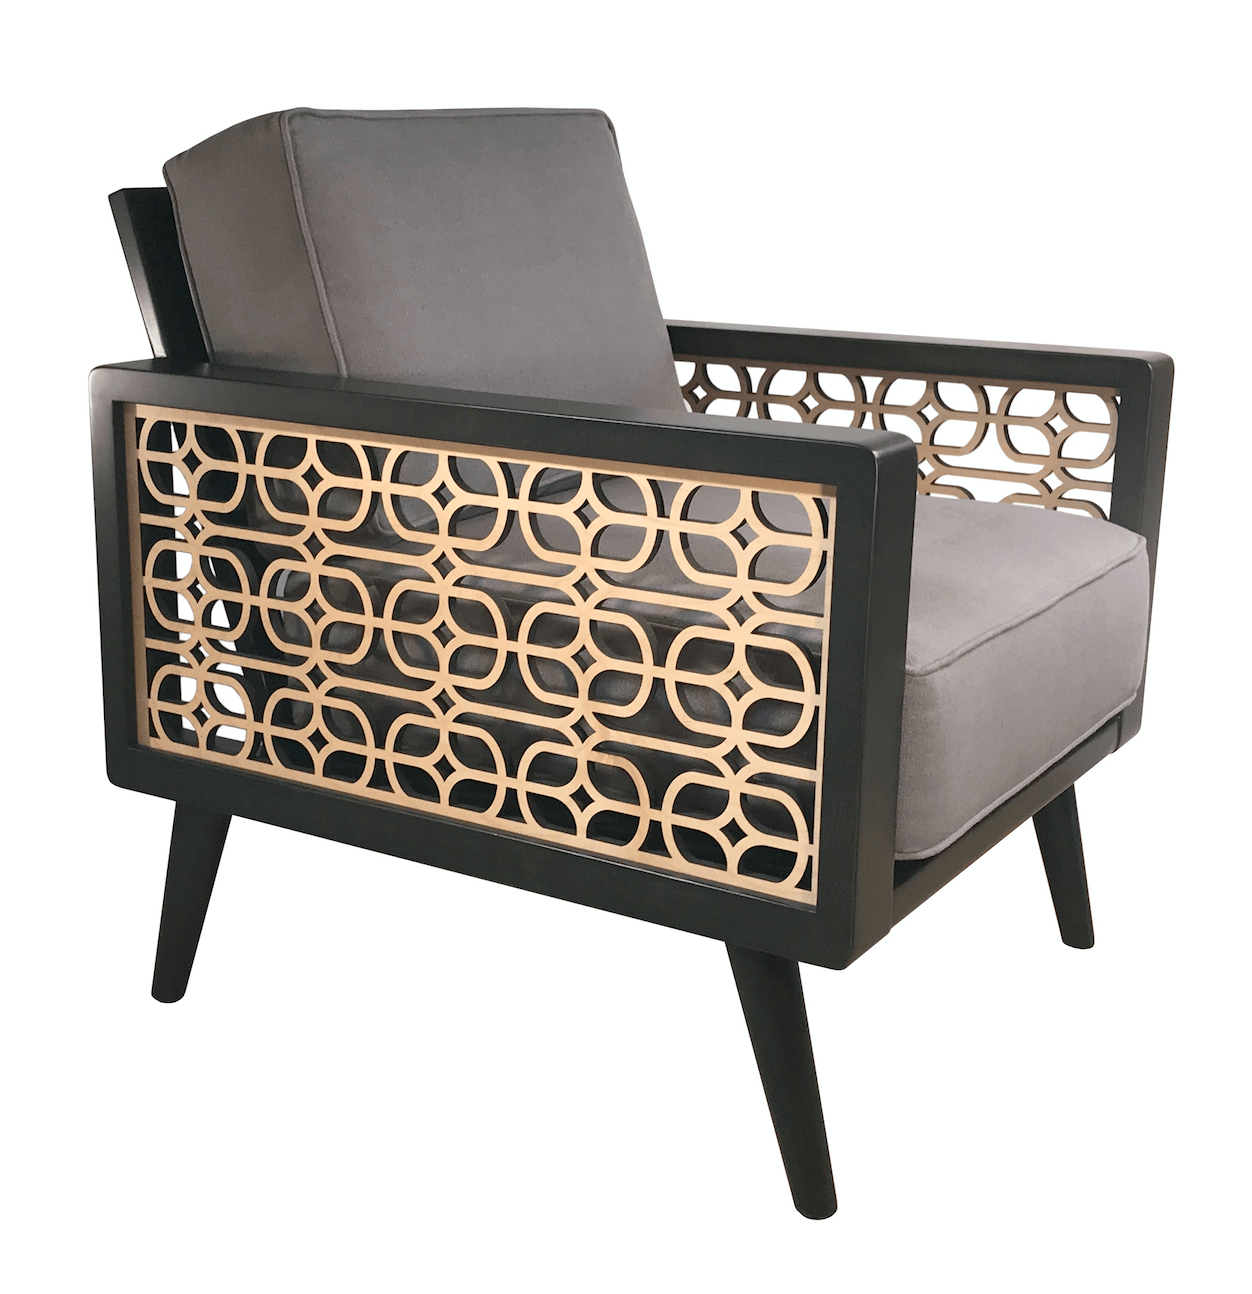 Lounge Grille Mid Century Modern Lounge Chair Gray